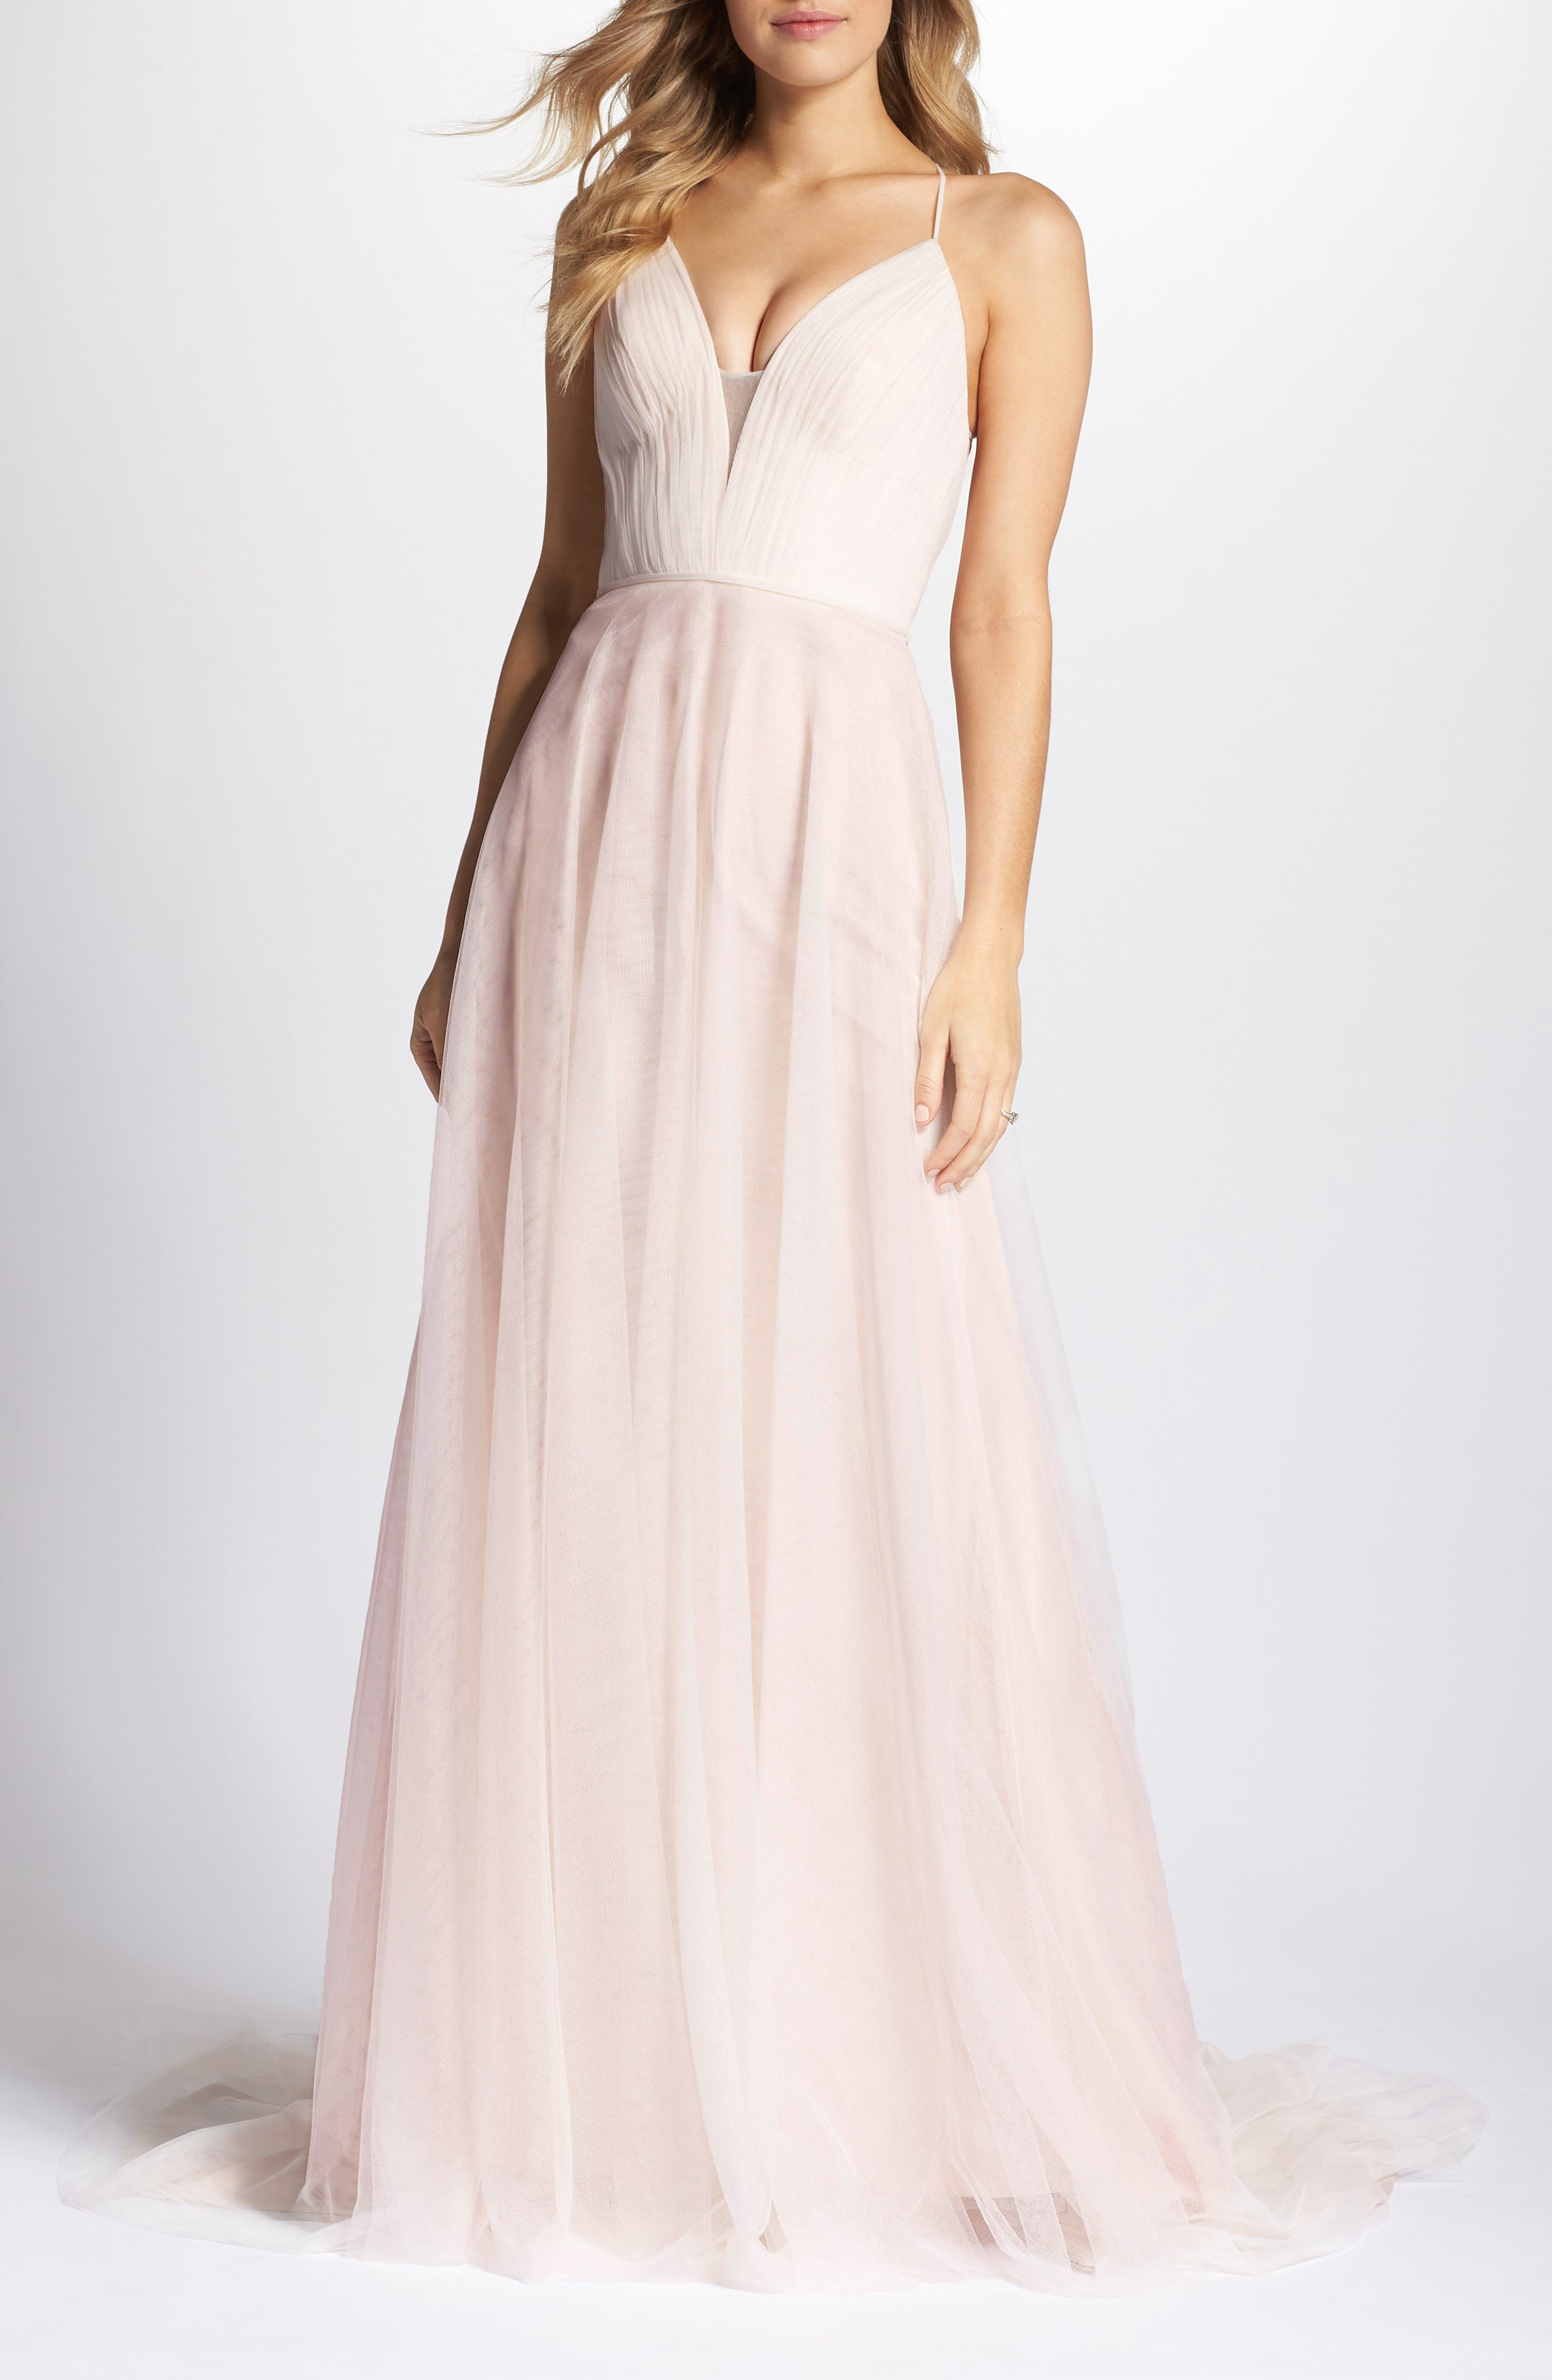 Ti Adora By Allison Webb Plunging A-Line Gown, Ivory